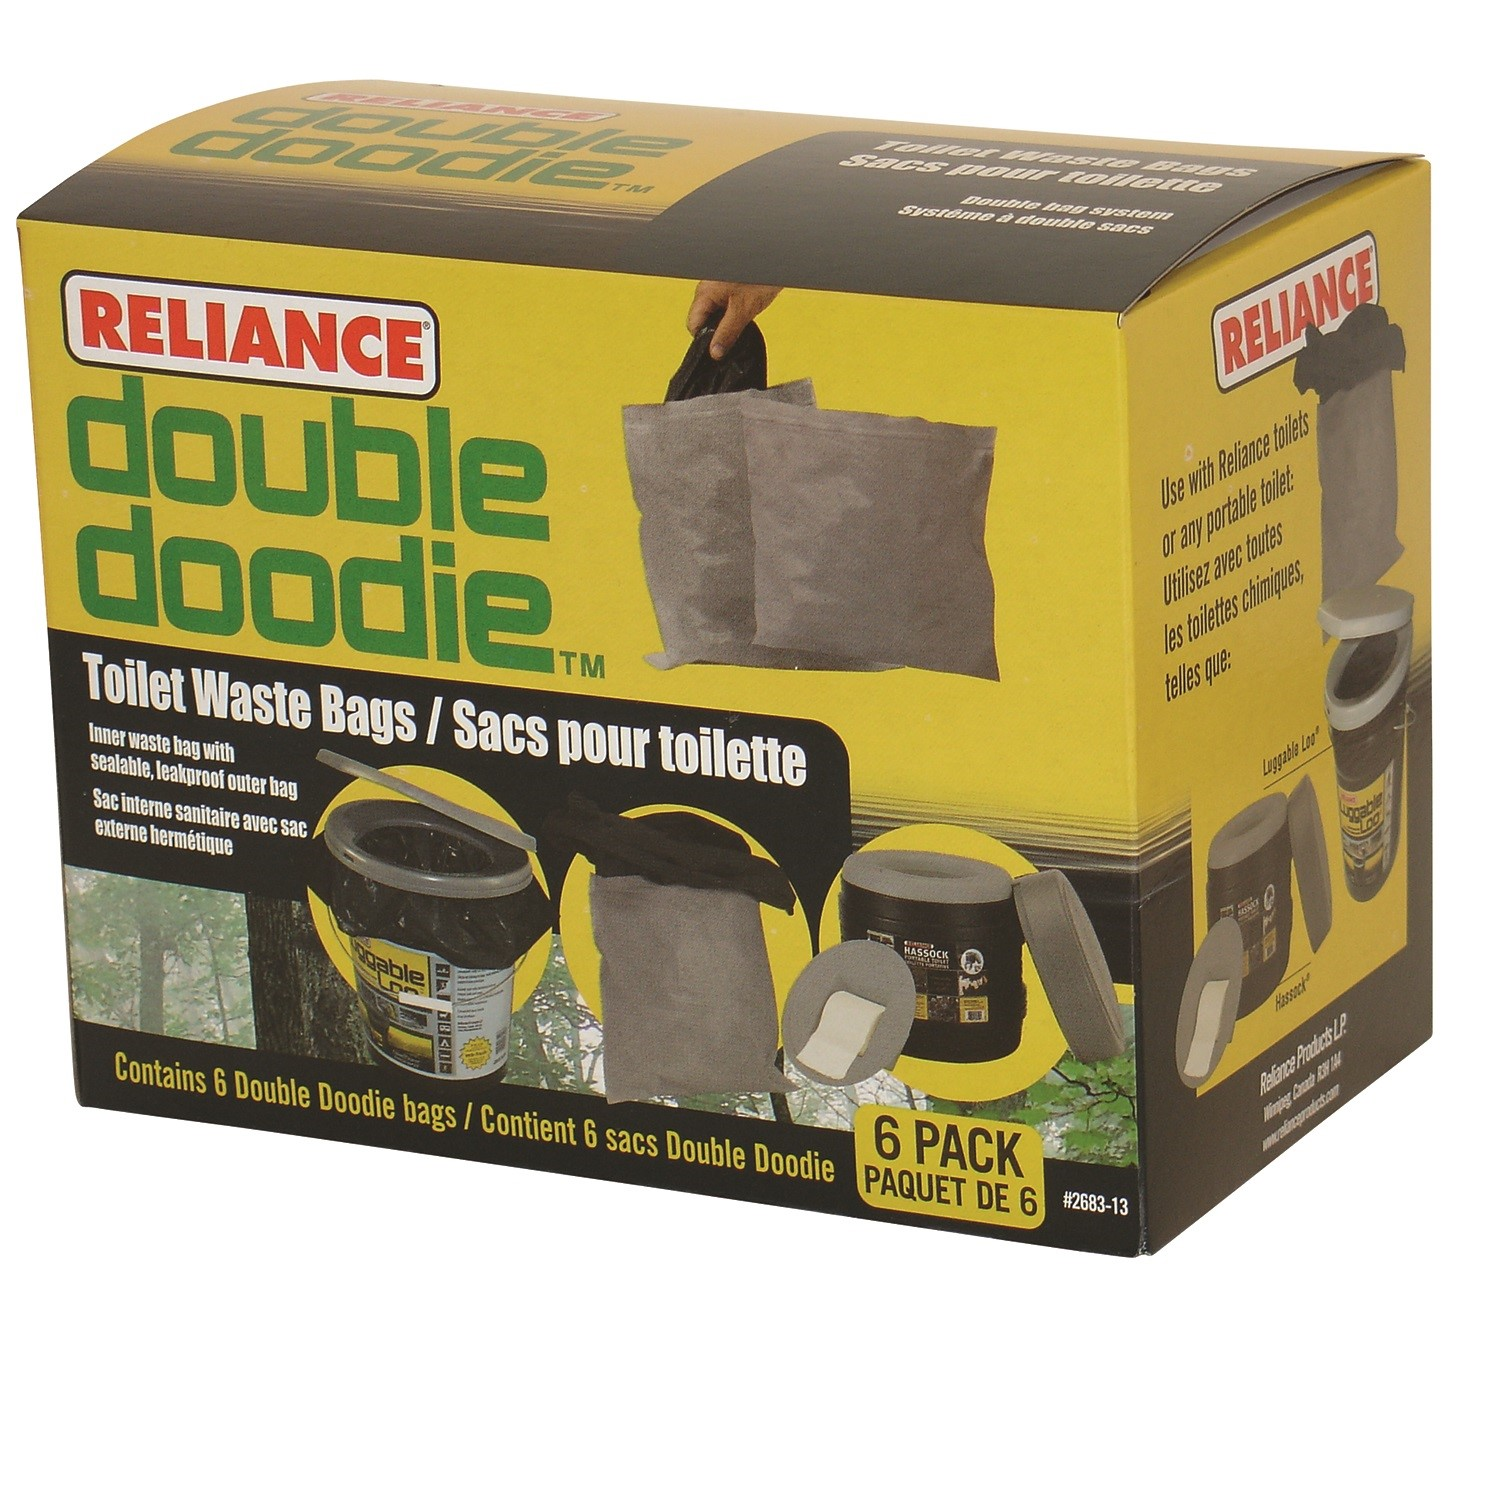 Reliance Double Doodie Toilet Waste Bag 6 Pack 2683-13 by WAL-MART STORES INC